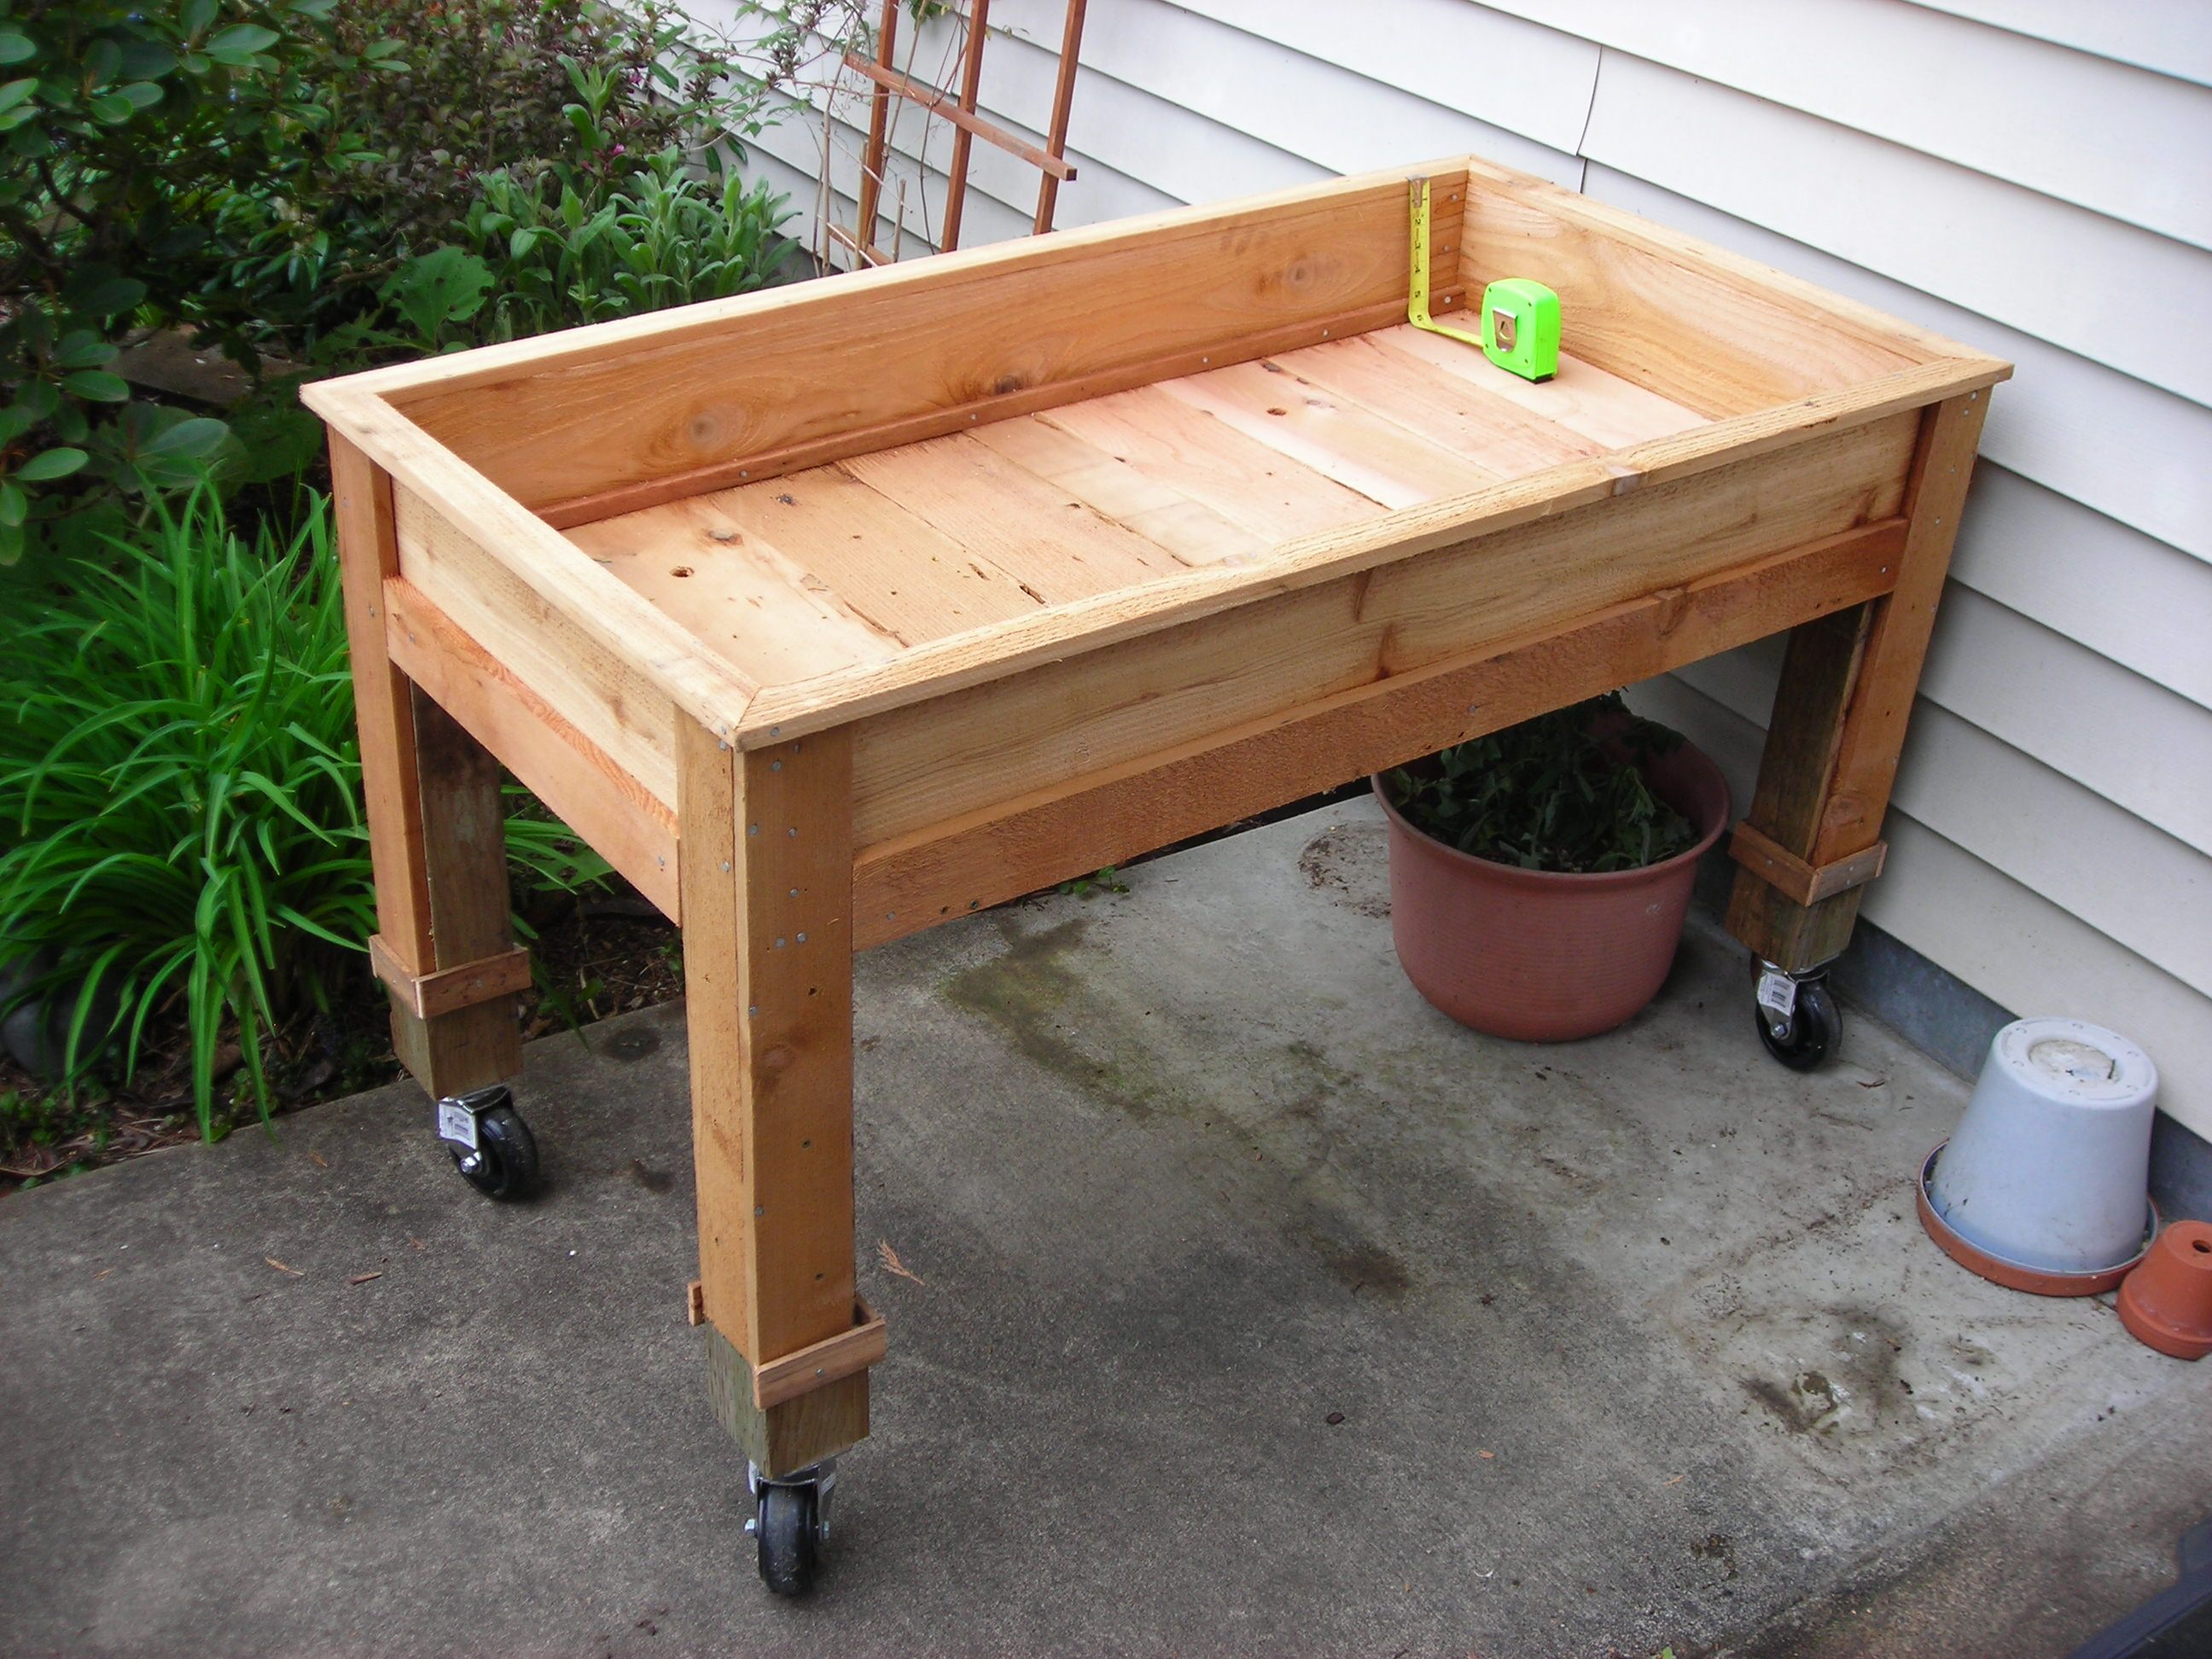 Beautiful Diy Raised Garden Beds On Legs Part - 10: Question About Portable Garden Bed (gardening For Beginners Forum At  Permies)